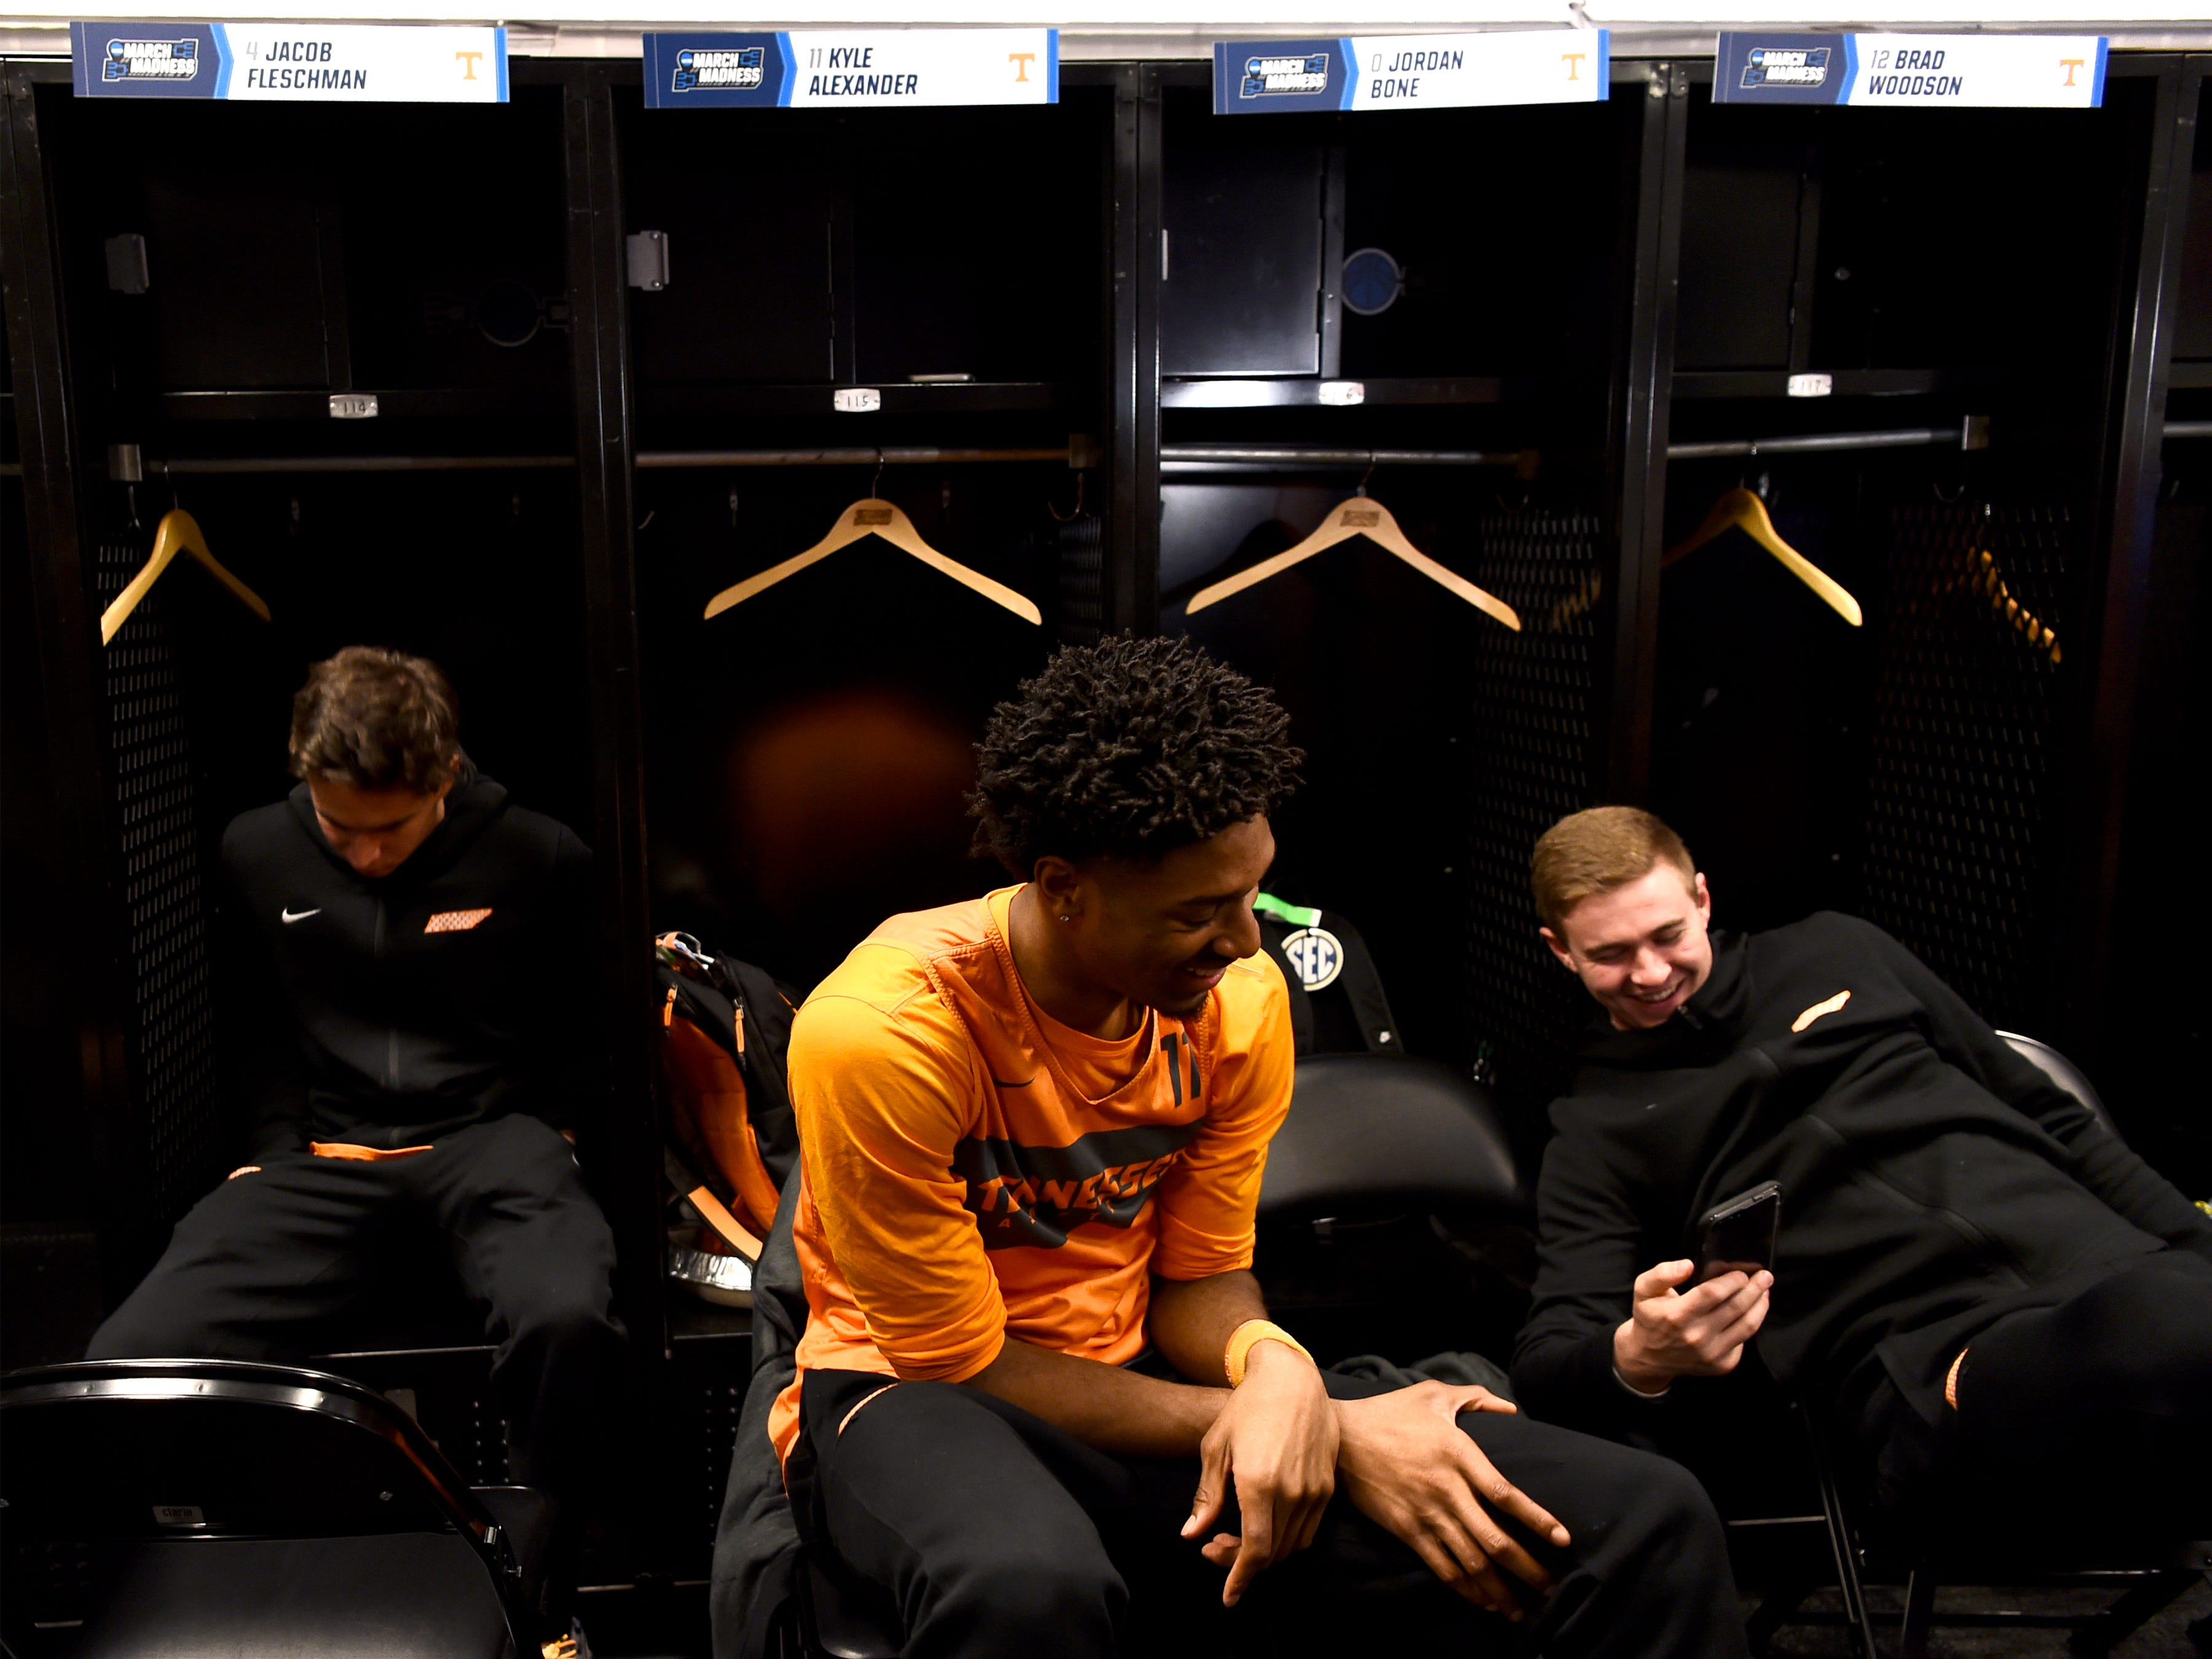 Tennessee forward Kyle Alexander (11) and Tennessee guard Brad Woodson (12) laugh in the locker room during media availability on Saturday, March 23, 2019, before the Tennessee Volunteers and Iowa Hawkeyes compete against one another in the second round of the NCAA Tournament held at Nationwide Arena in Columbus, Ohio, on Sunday, March 24, 2019.